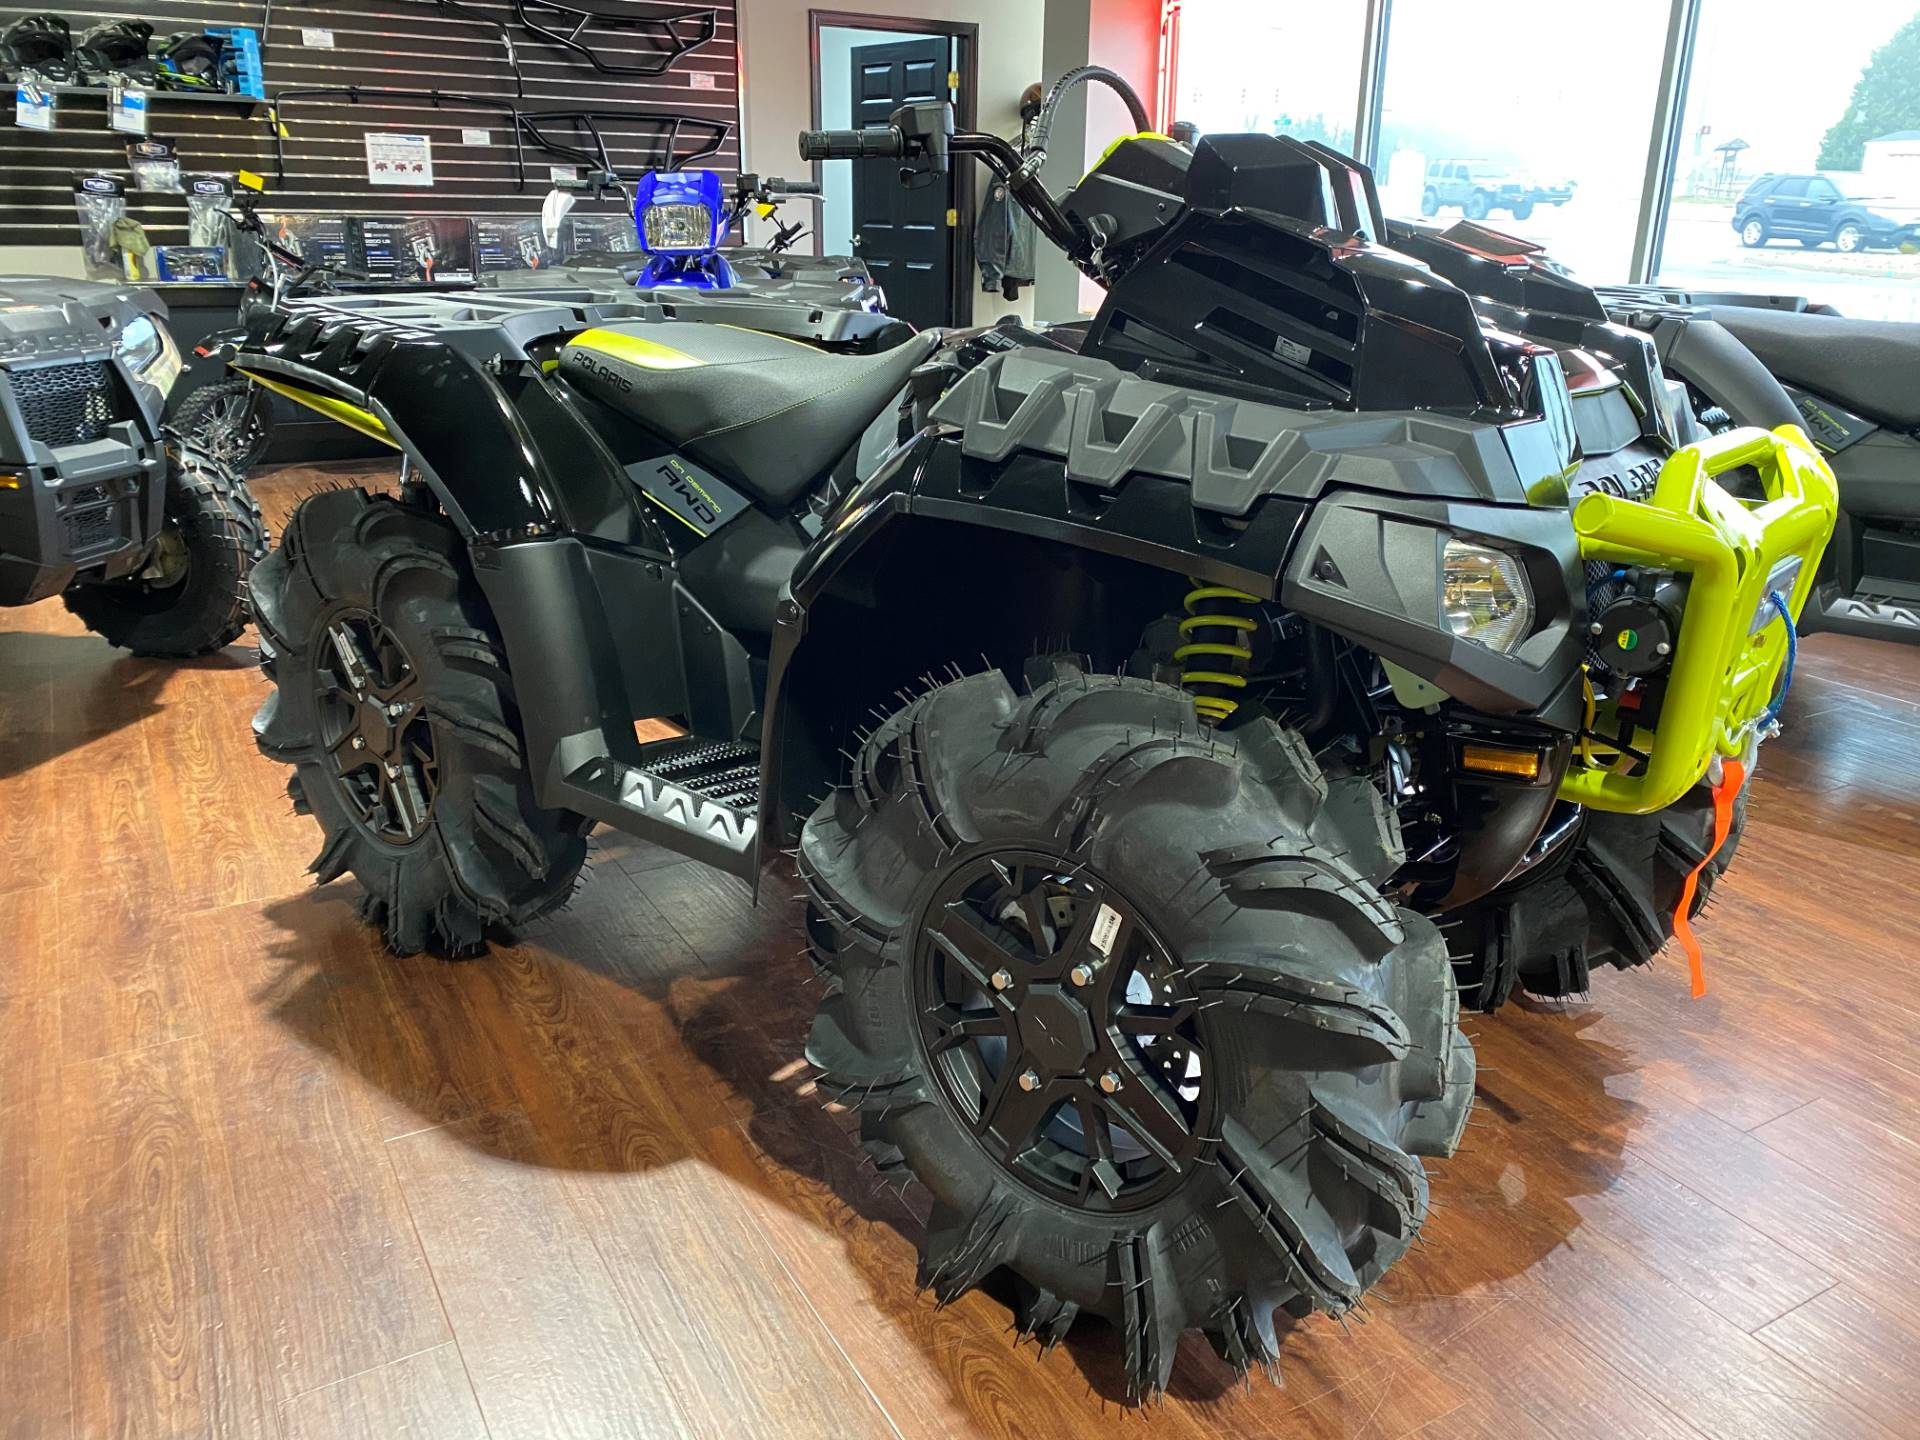 2020 Polaris Sportsman XP 1000 High Lifter Edition in Greer, South Carolina - Photo 15